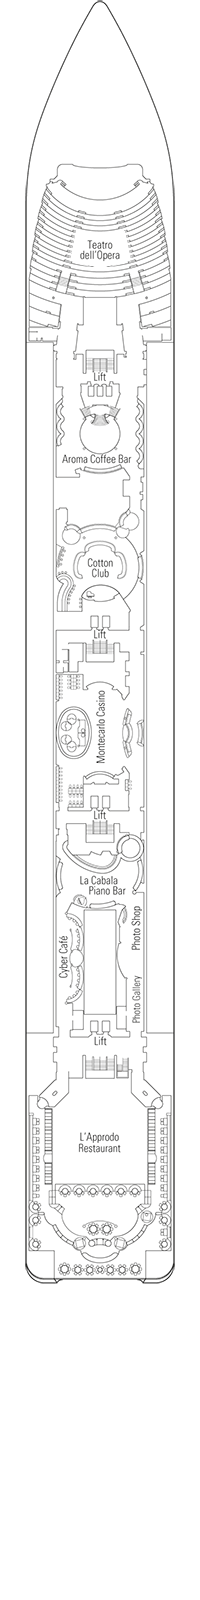 Otello Deck Plan